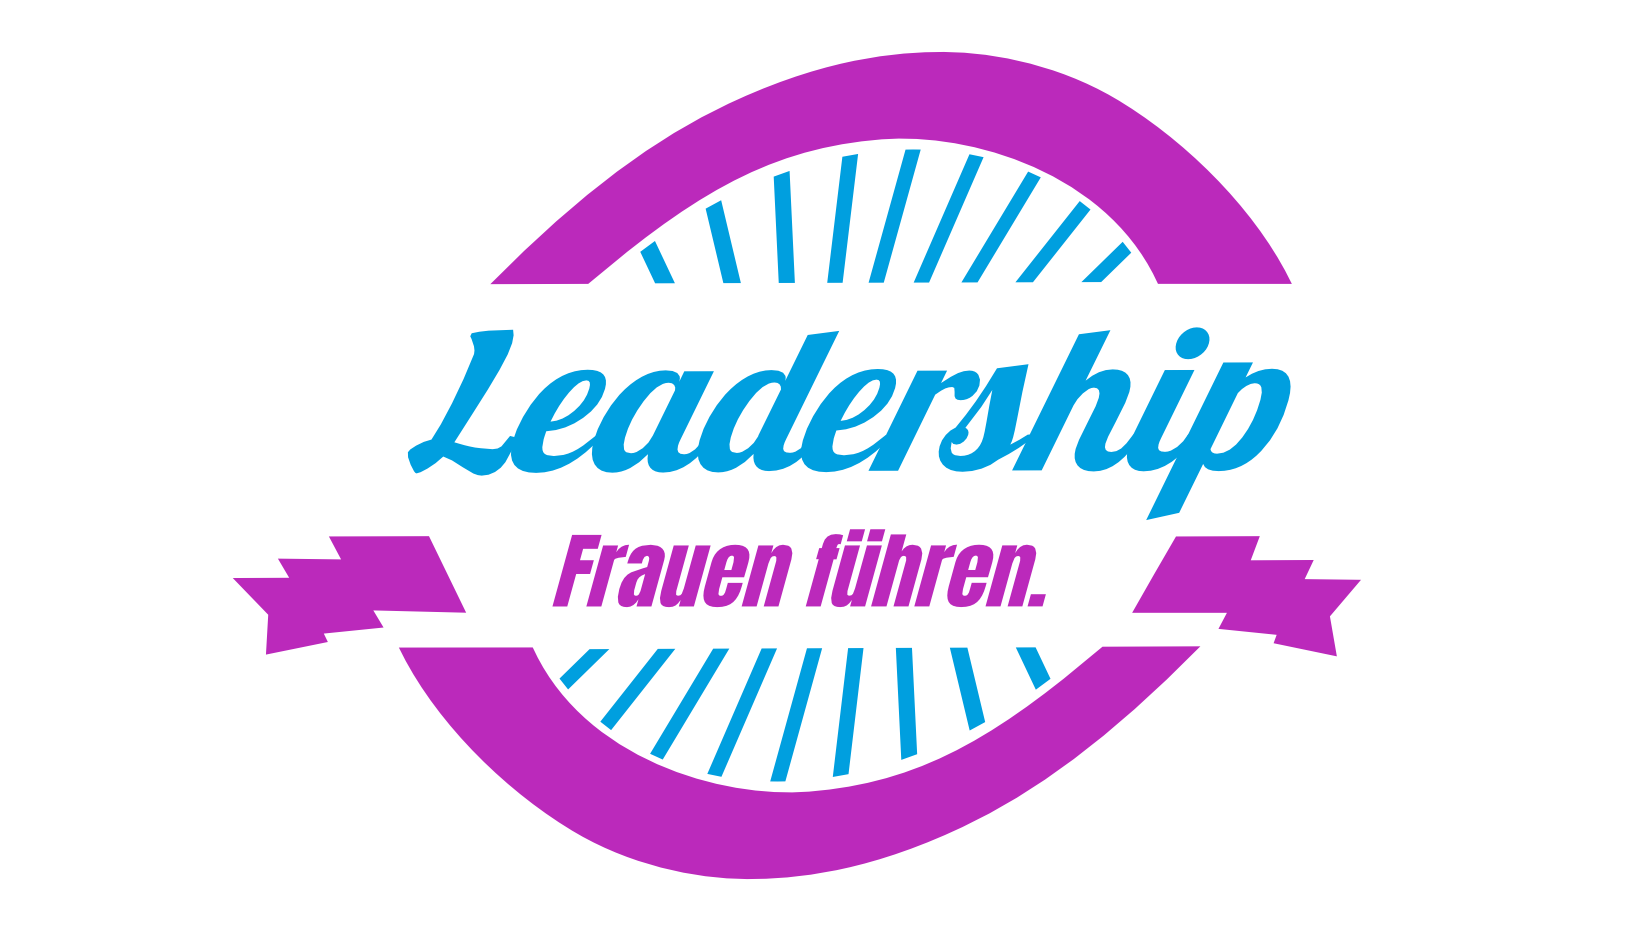 Post-Picture-WS-Leadership-Frauen-fuehren